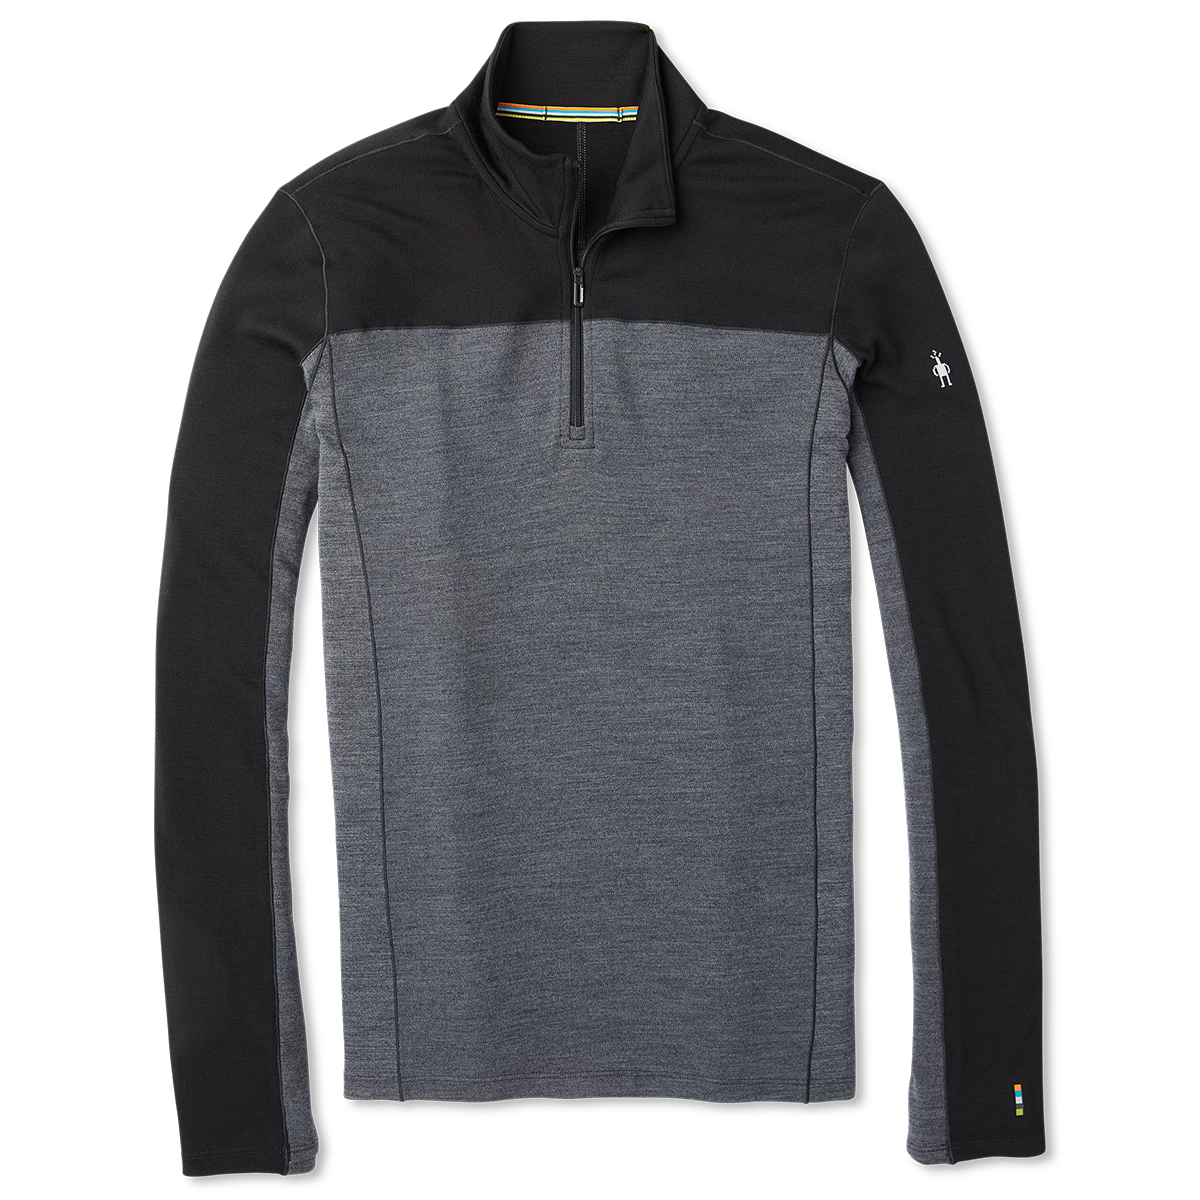 Smartwool Men's Merino Sport 250 Long-Sleeve 1/4-Zip Pullover - Black, M